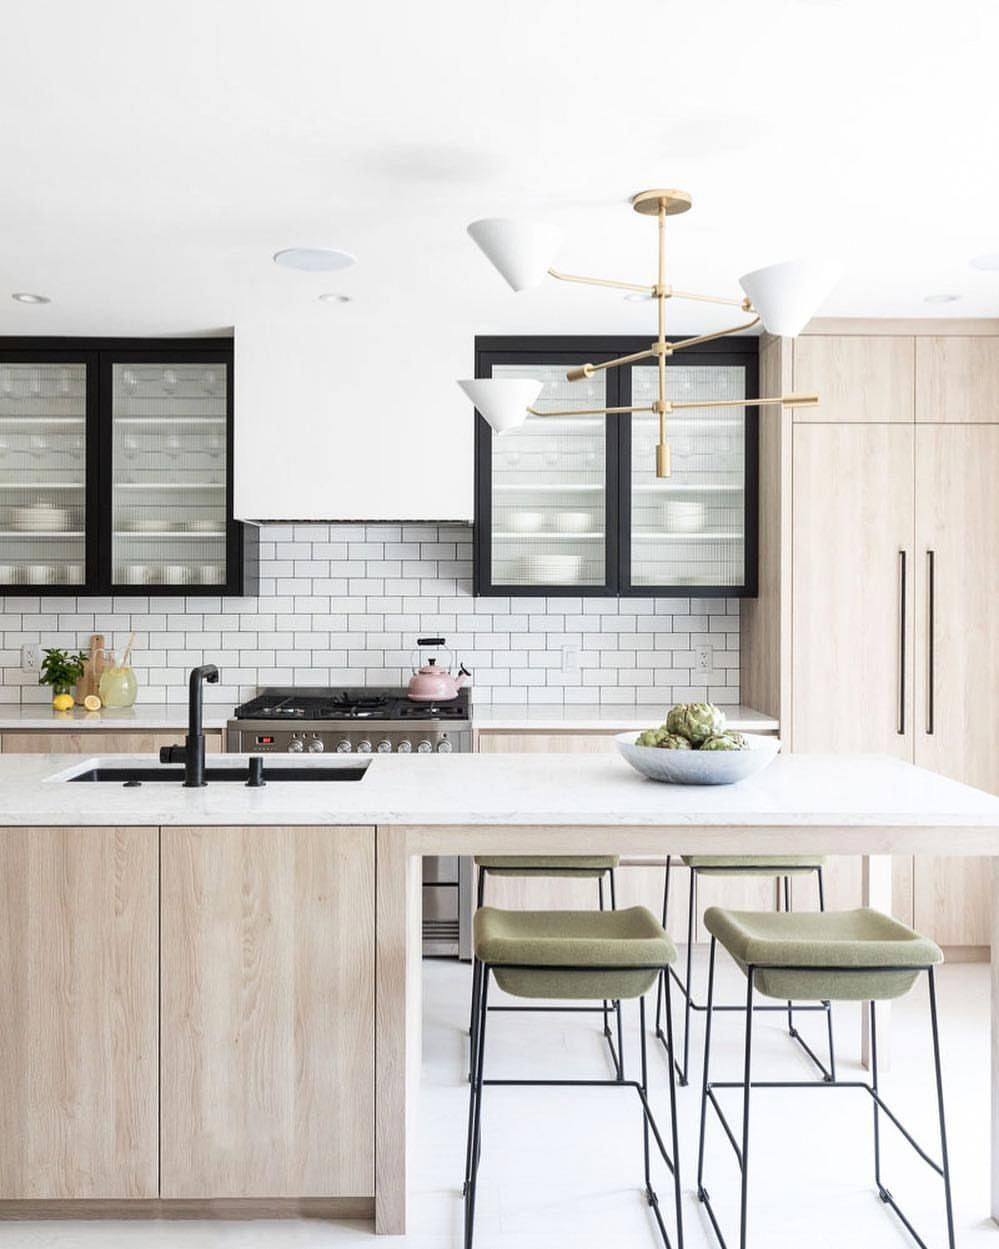 We showed our team this photo at weekly design meeting and everyone was gushing love the idea of black    kitcheninteriordesign also navy white wood kitchen homes interiors in pinterest rh